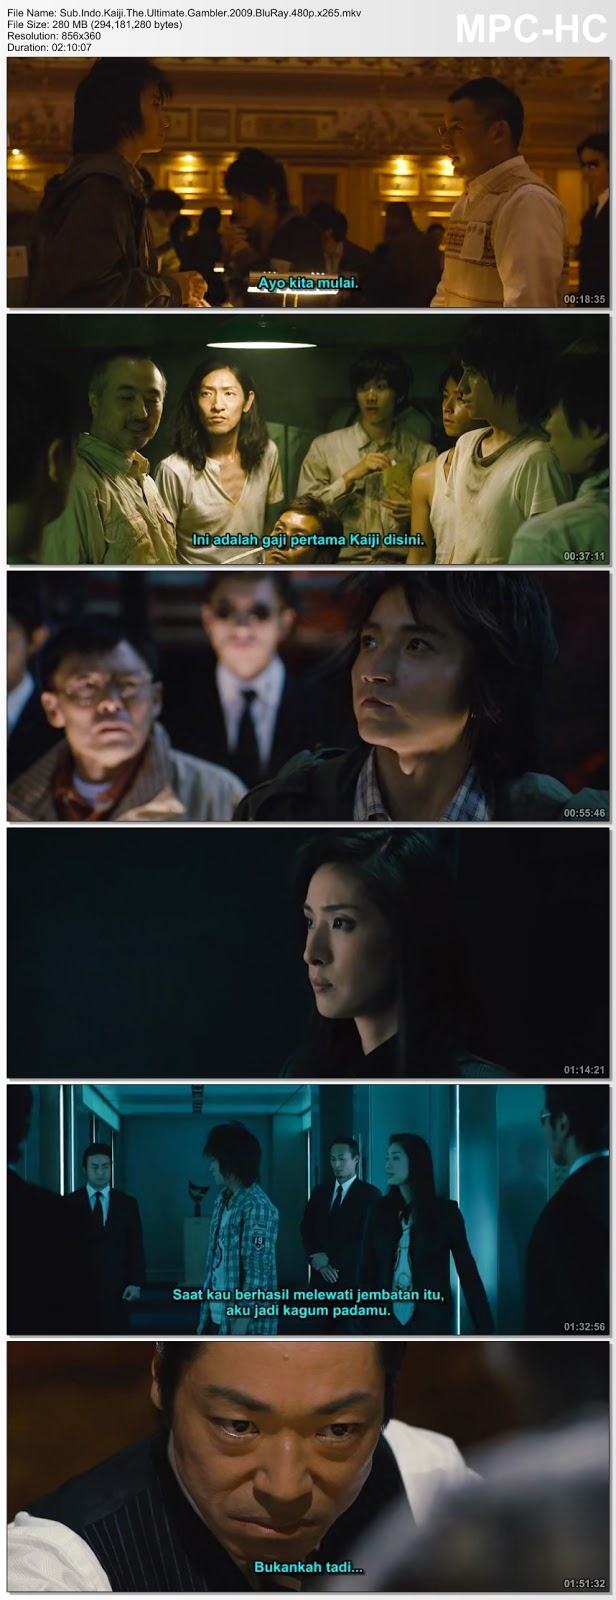 Screenshots Movie Sub.Indo.Kaiji: Jinsei Gyakuten gemu aka Kaiji: The Ultimate Gambler (2009).BluRay.480p.x265.mkv